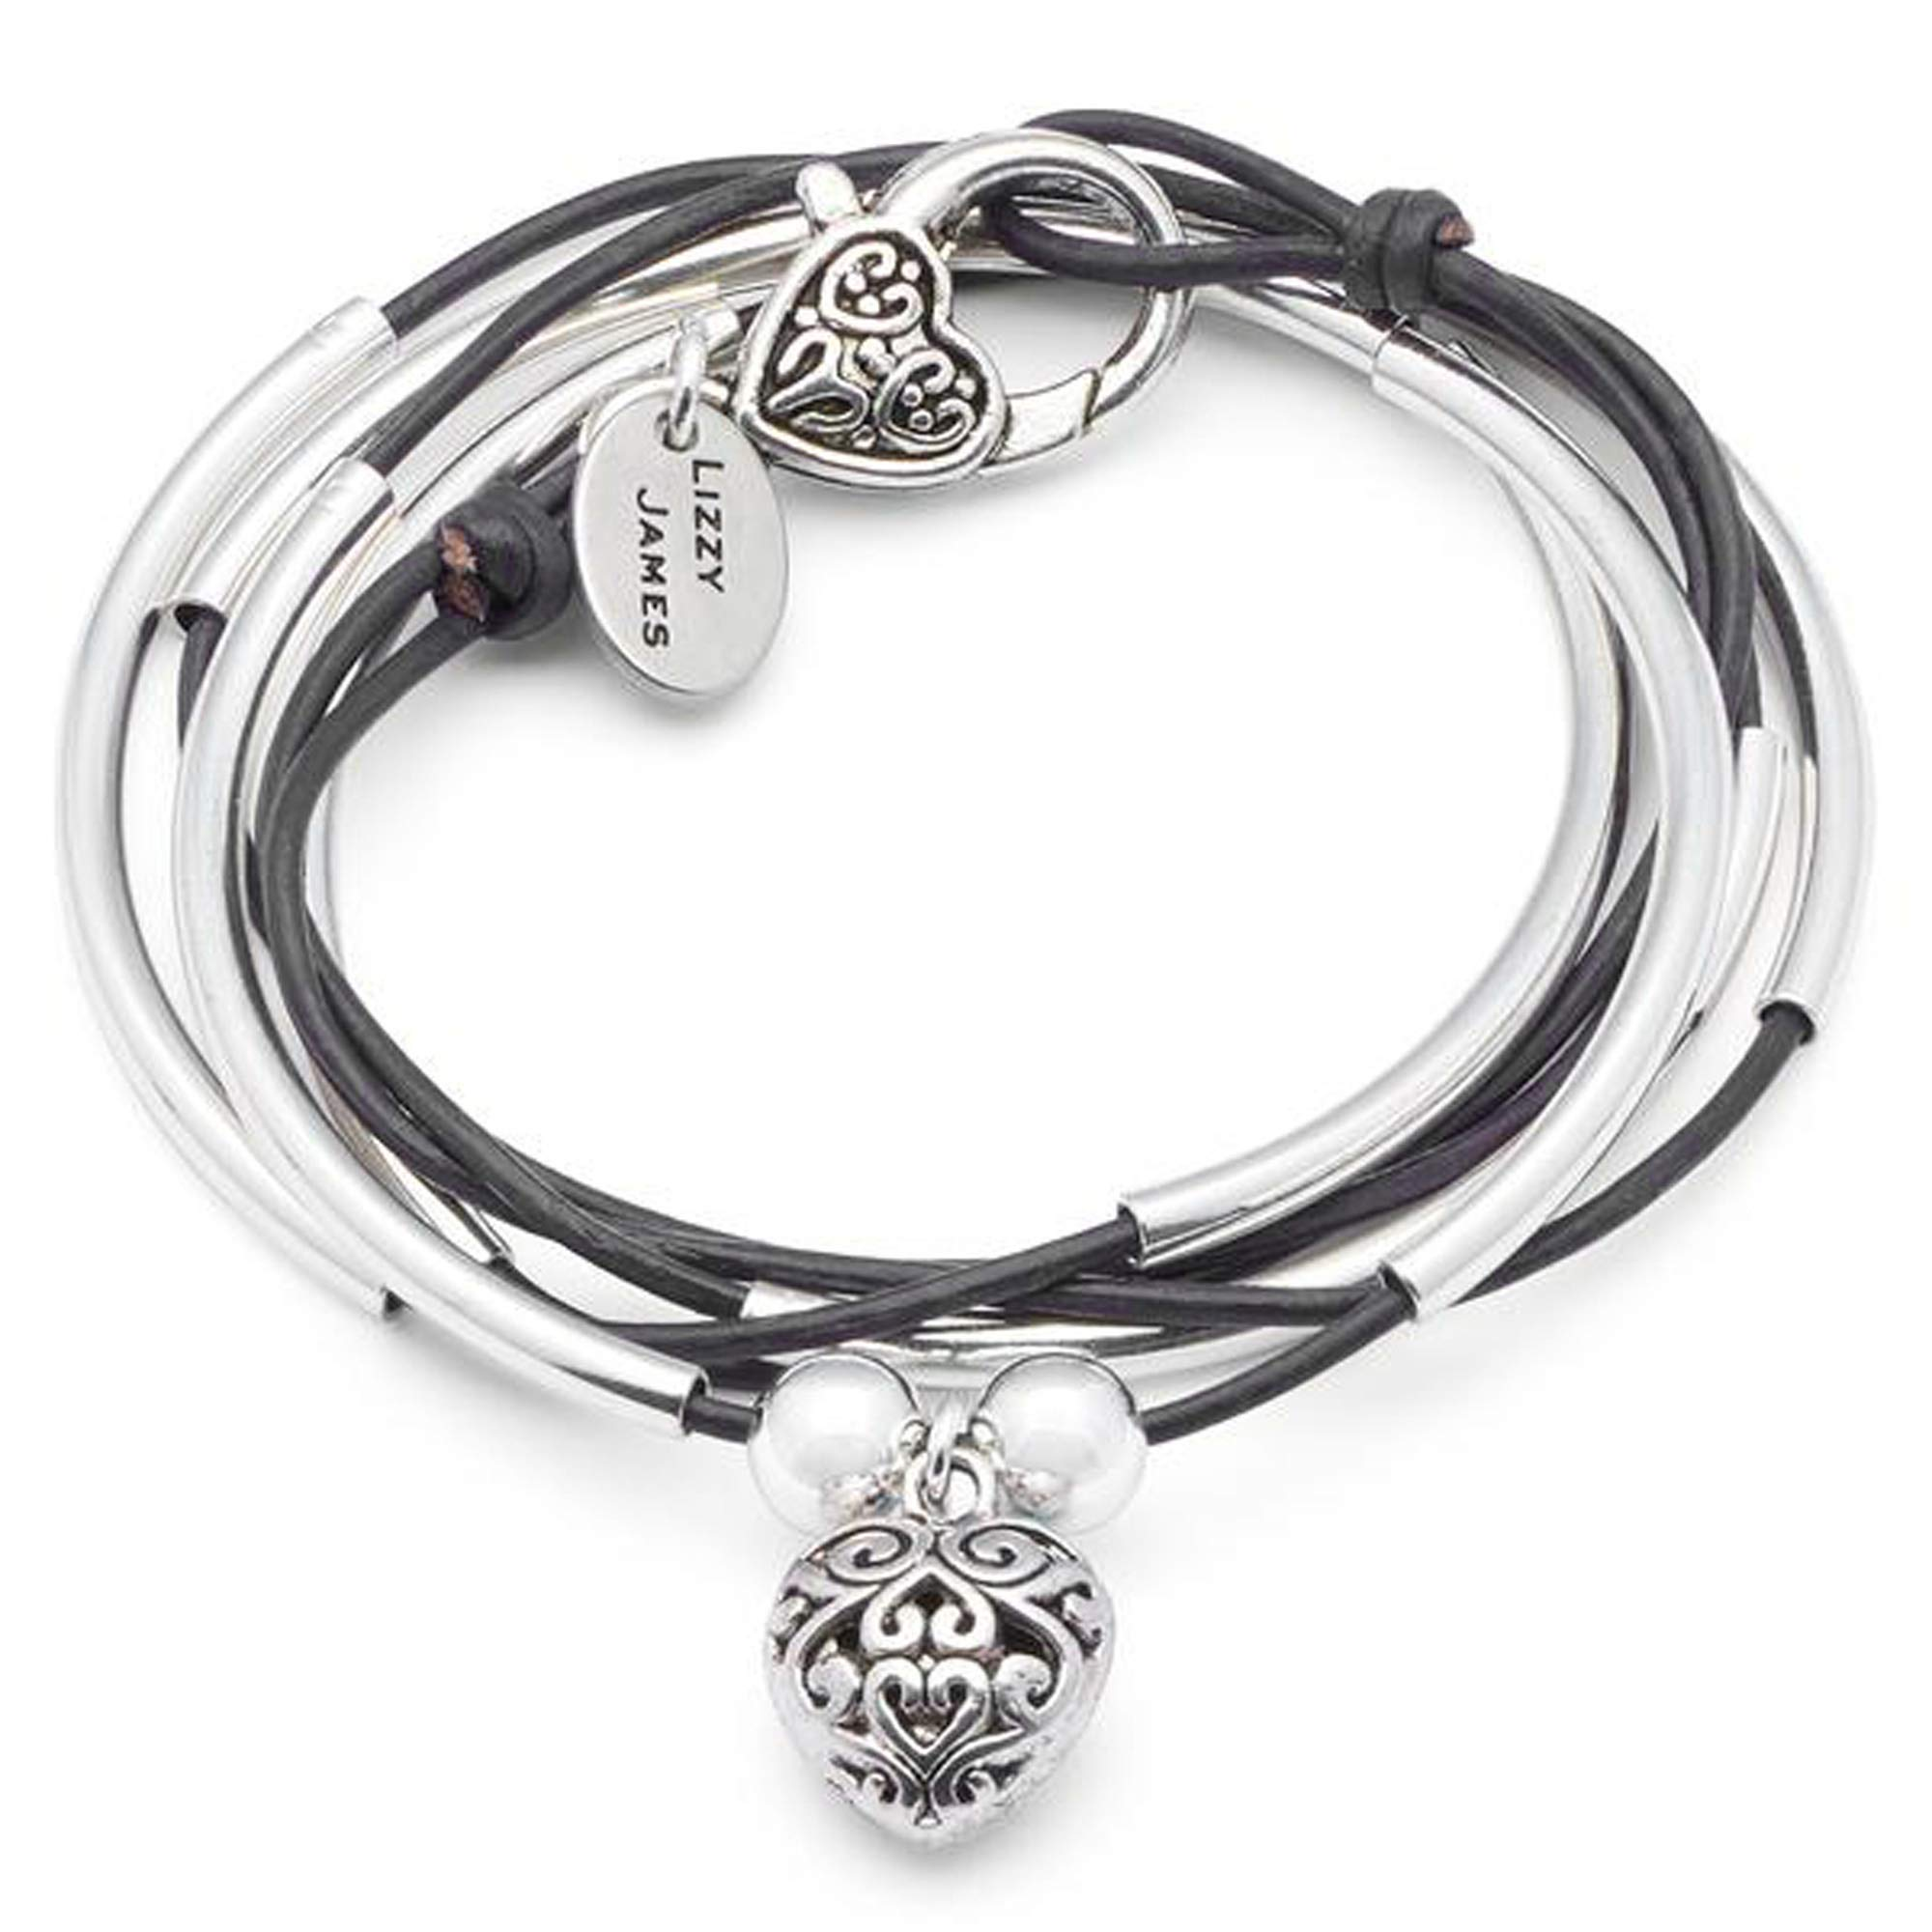 Lizzy James Girlfriend Silver Charm Bracelet Necklace w Puffed Heart Charm in Natural Black Leather (Medium)